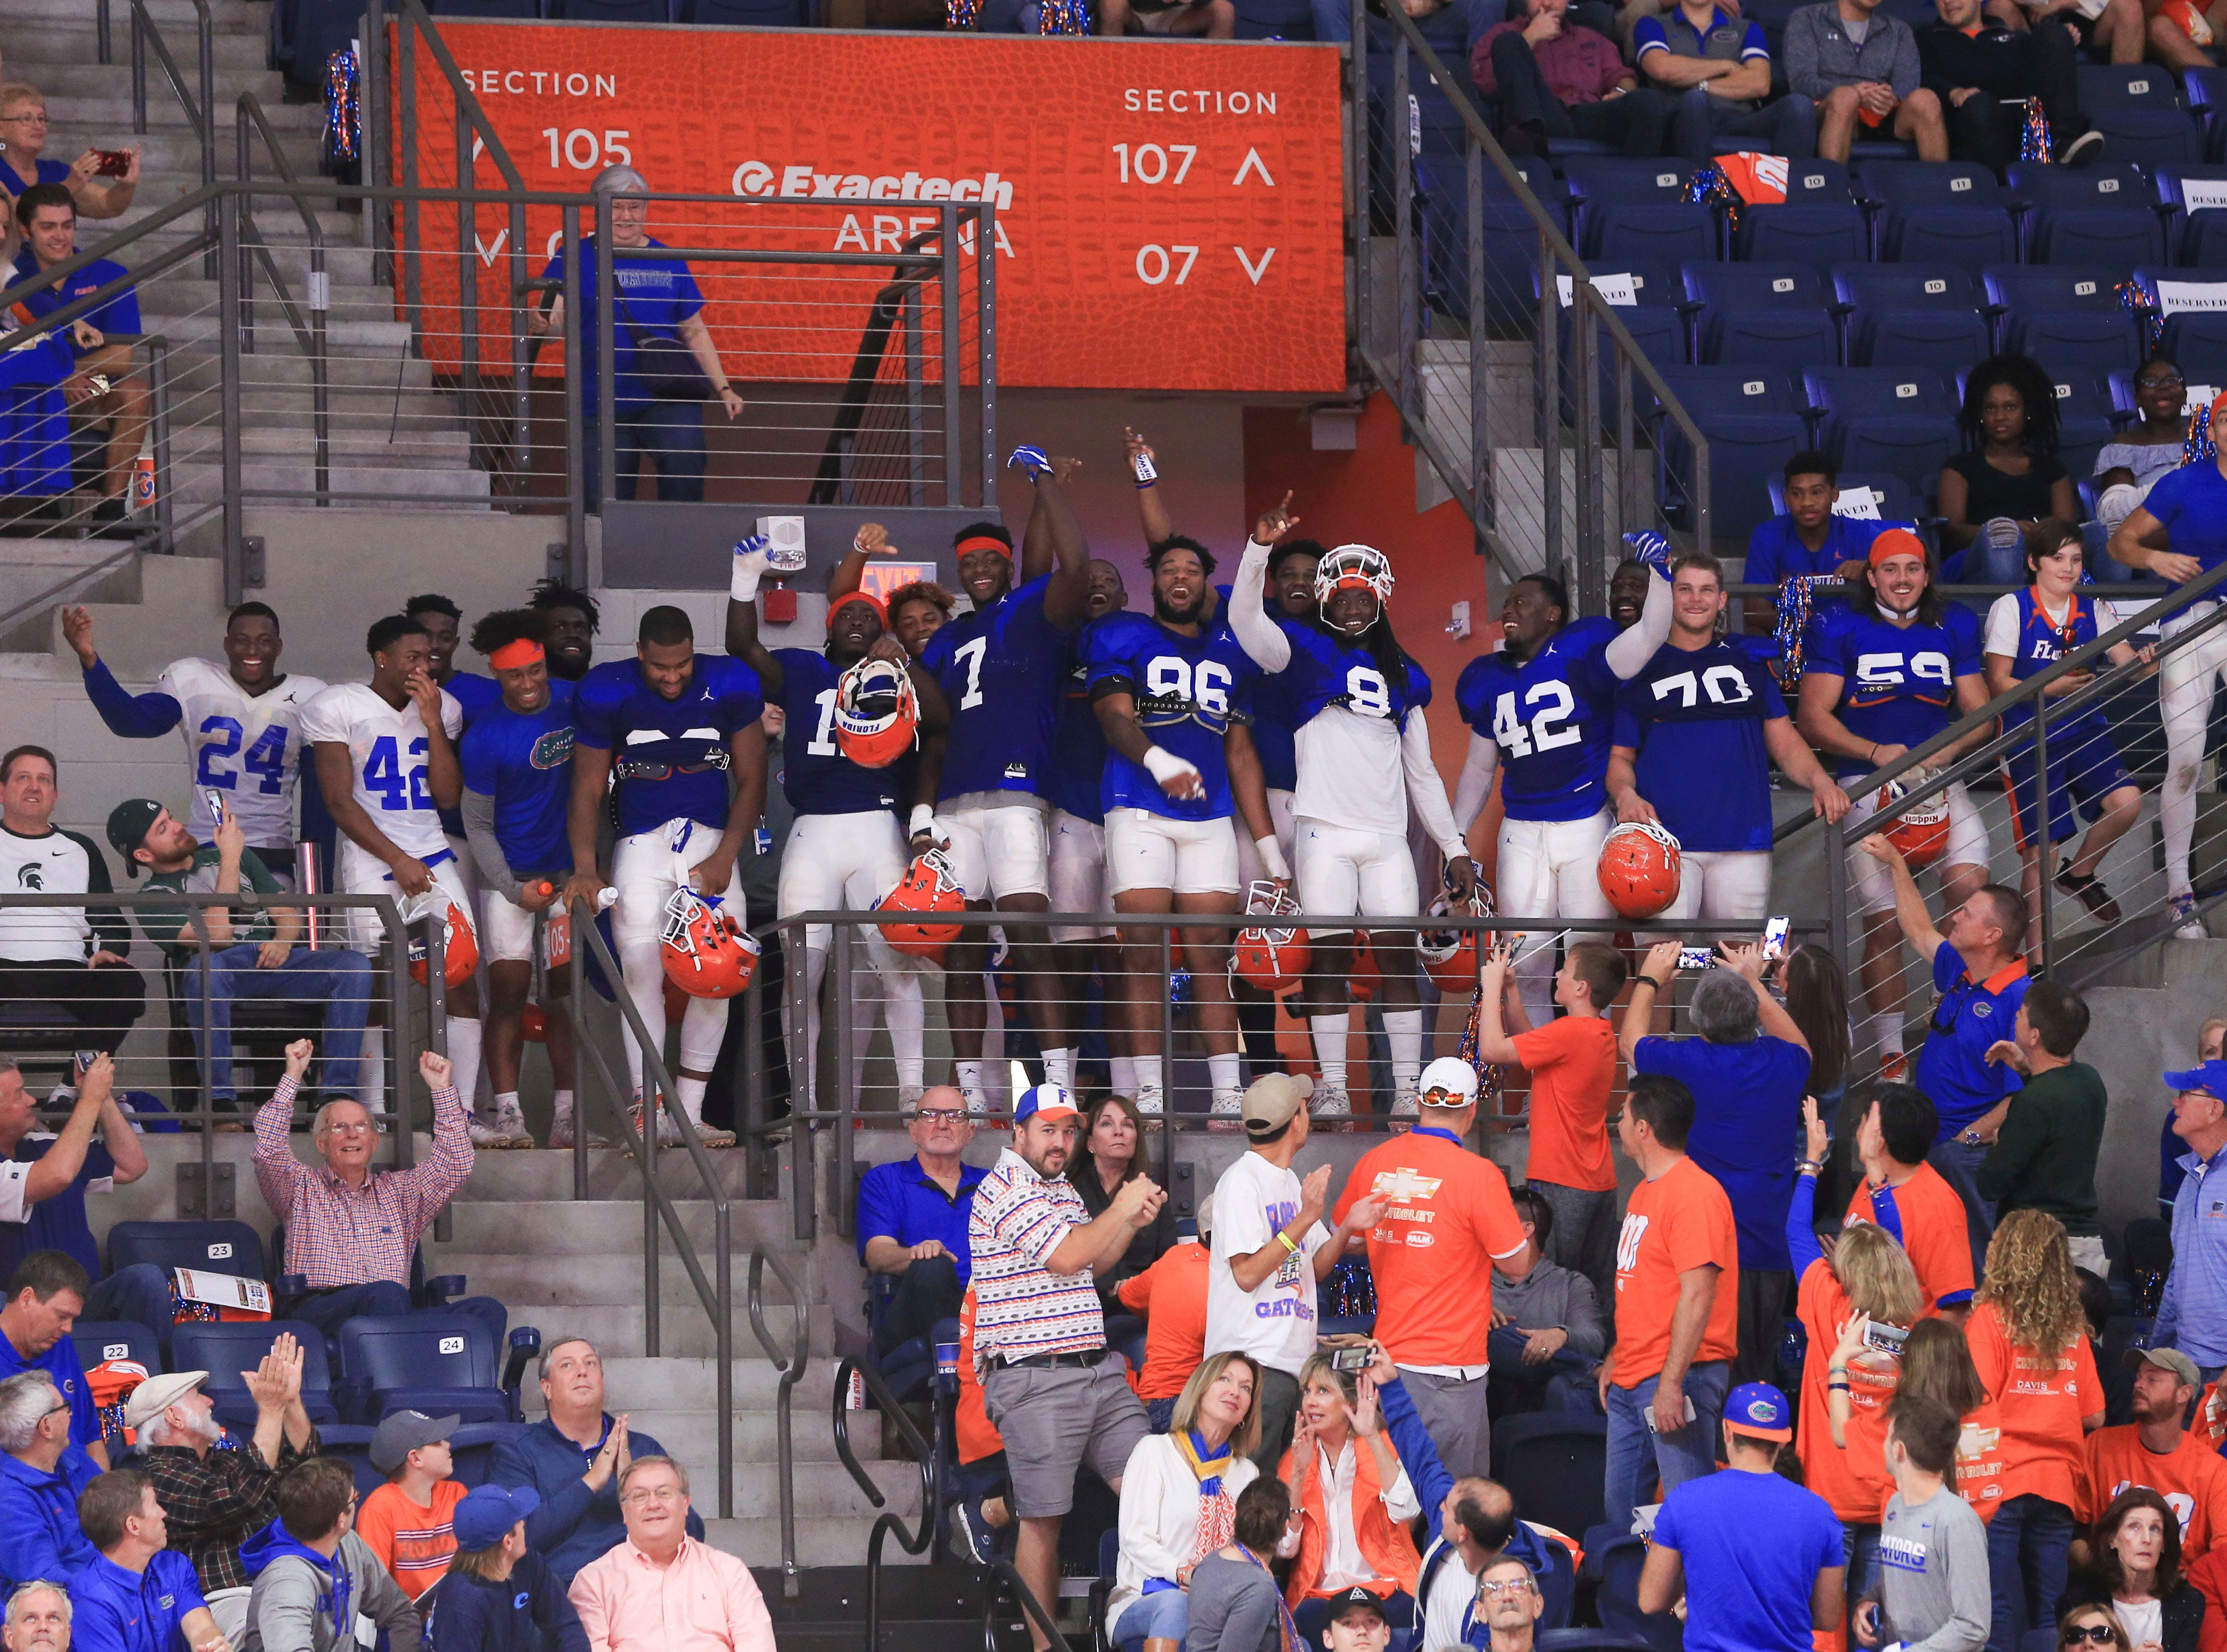 Members of the Florida football team watch the final minutes of the game against Michigan State during the second half.